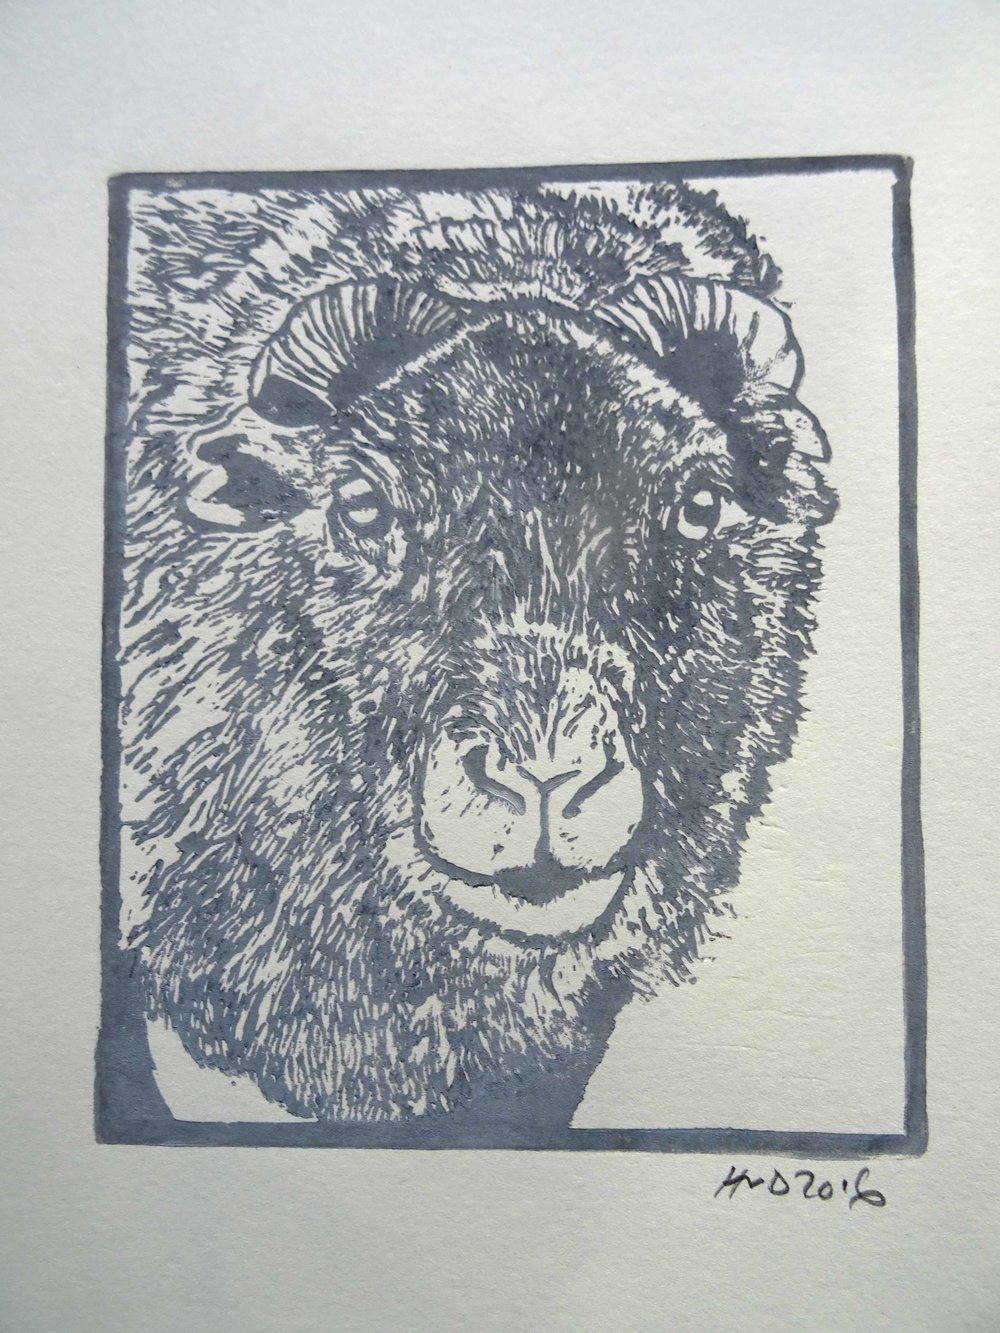 148A - sheep head, lno 16x13cm, 20 €